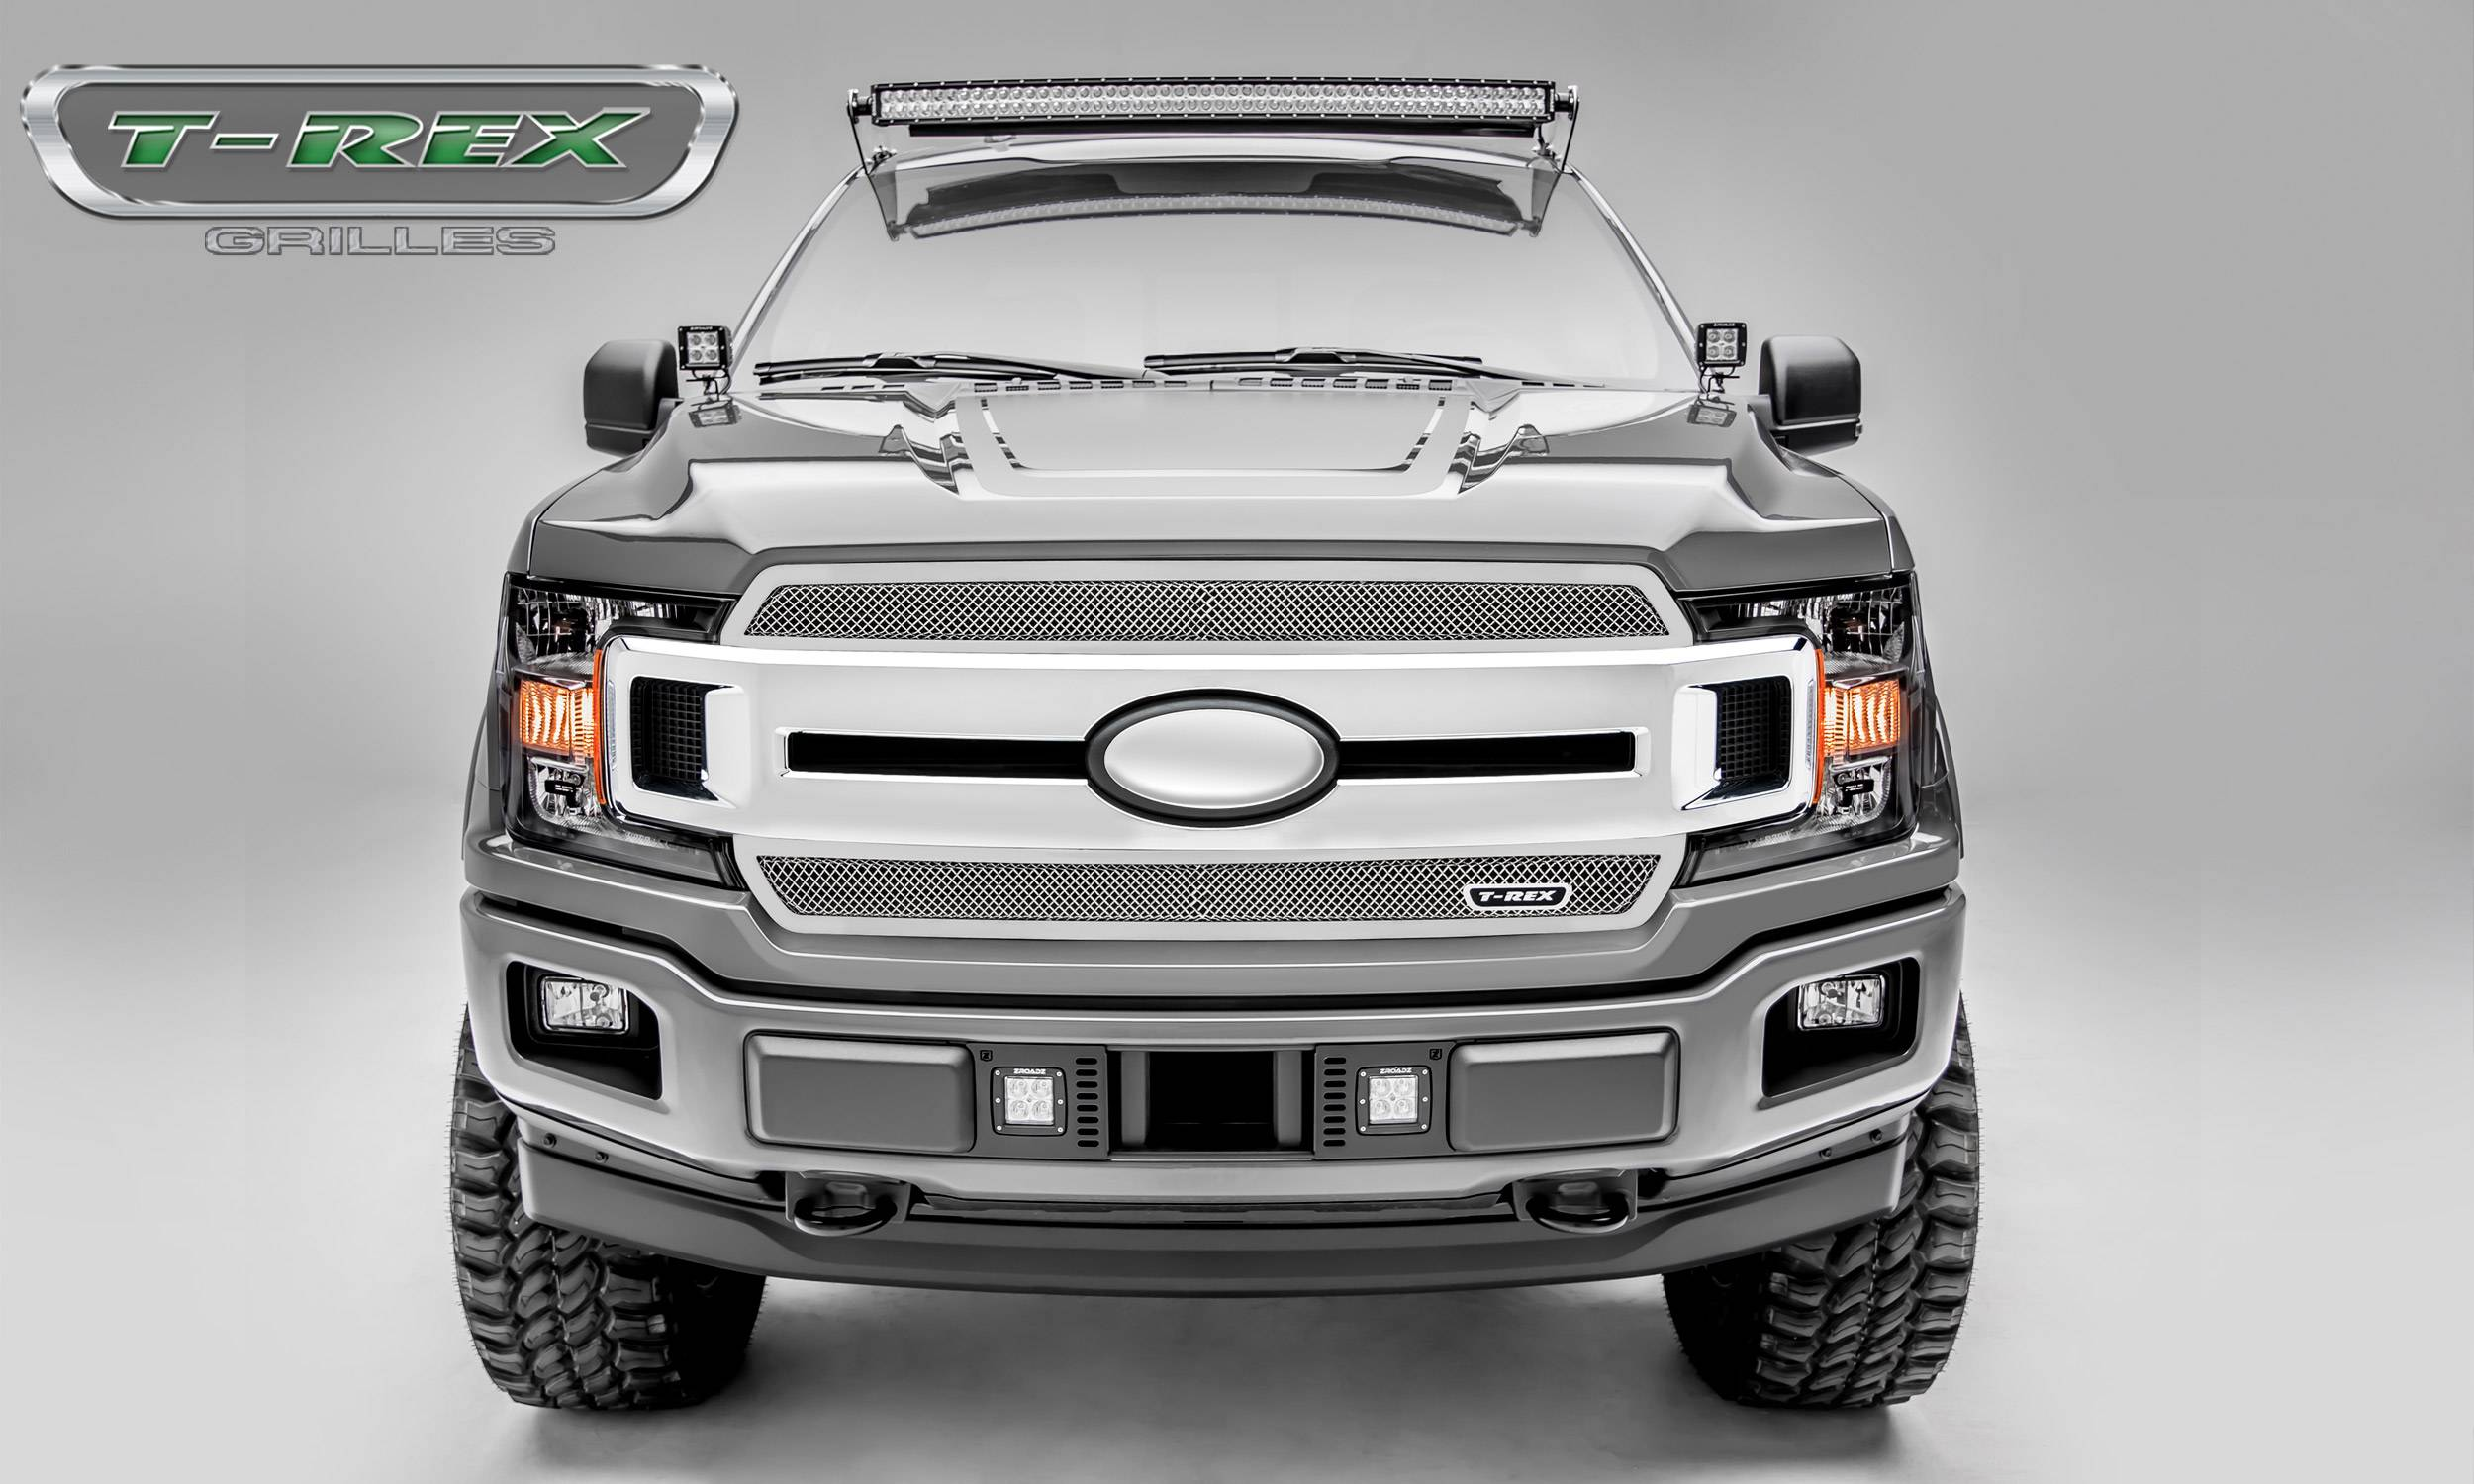 T-REX Grilles - T-REX Ford F-150 - Upper Class Series - 2 PC Main Grille Overlay / Insert with Polished Stainless Steel Finish - Pt # 54710